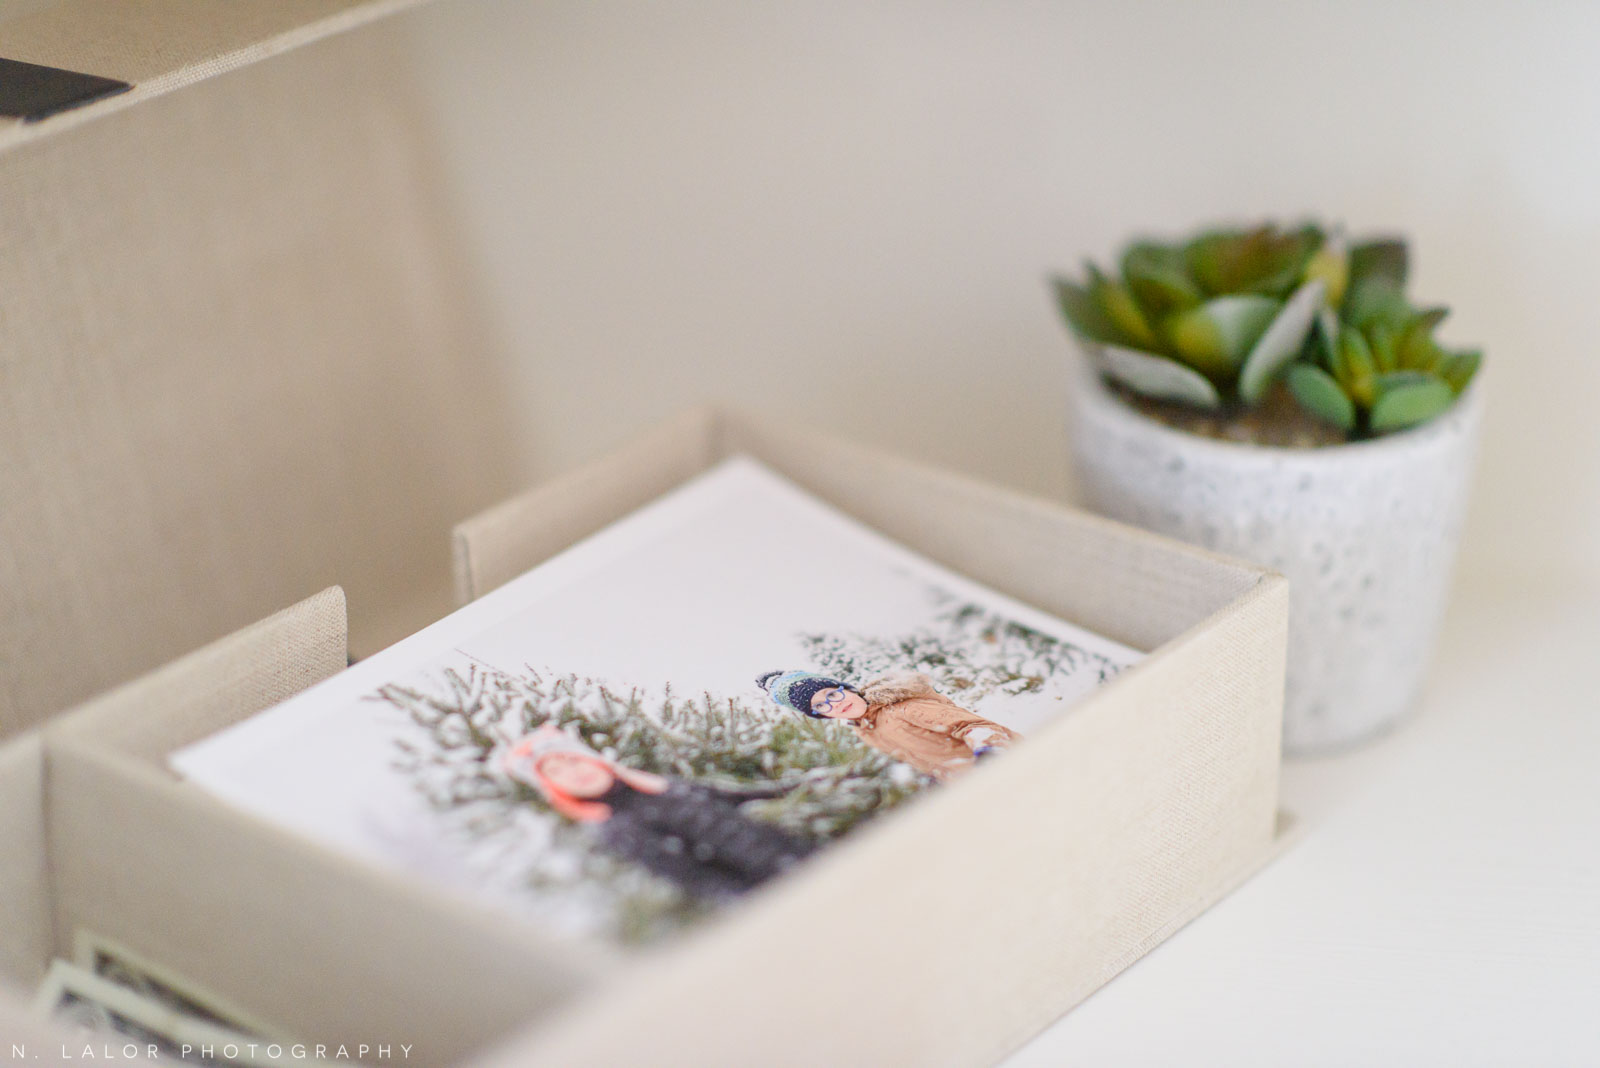 A look into a child's photo memory box, displayed on an open shelf in the living room. Photograph by N. Lalor Photography.